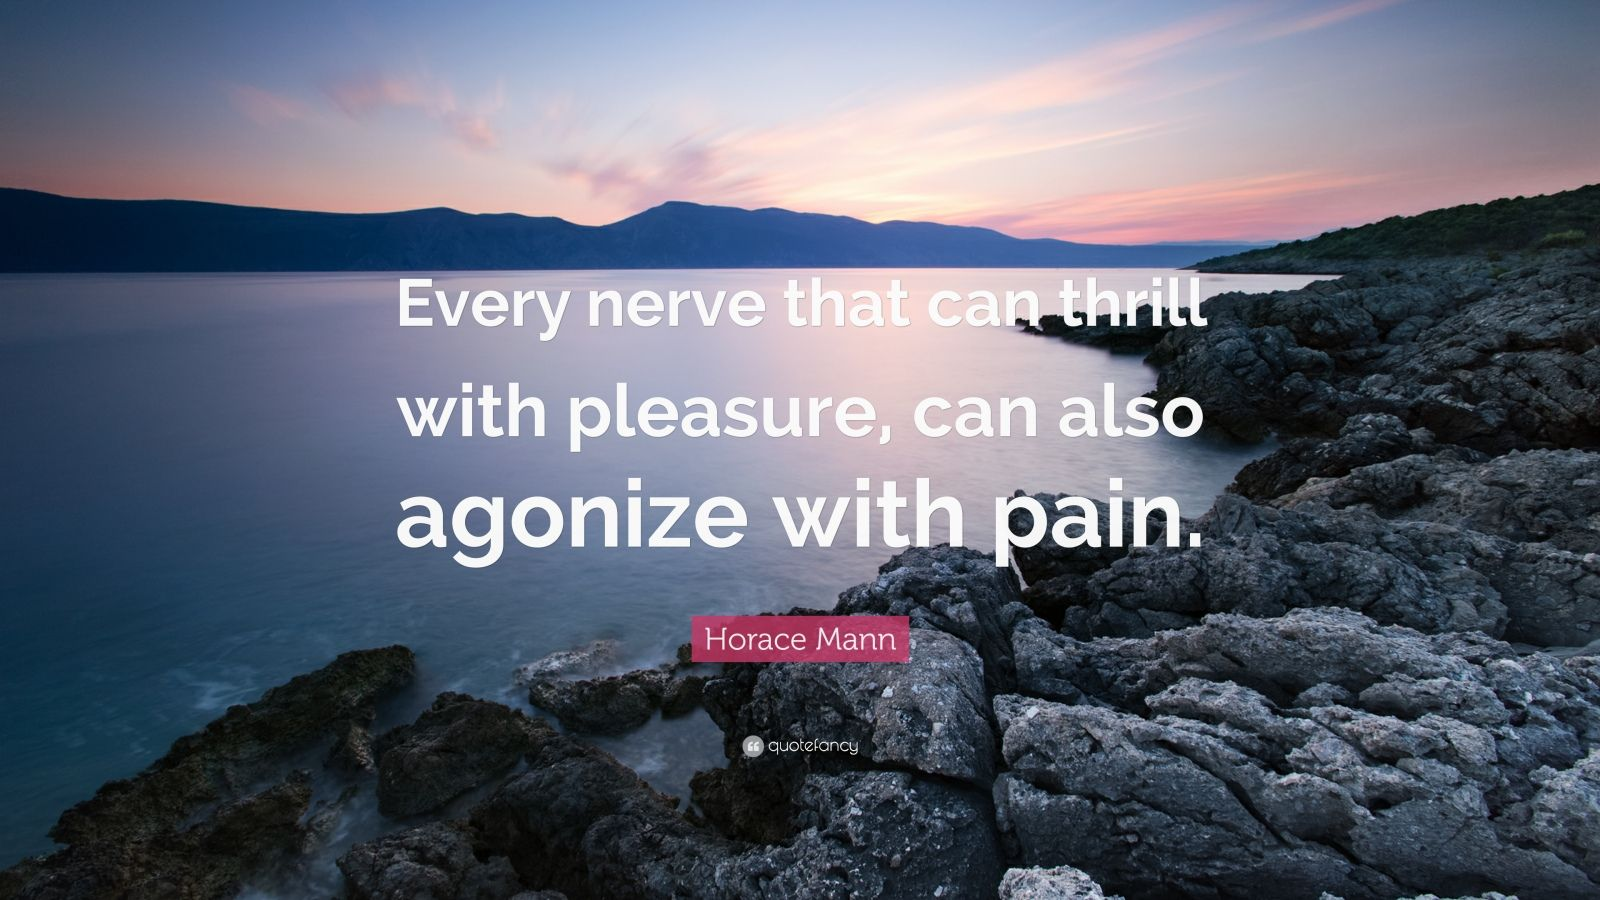 """Horace Mann Quote: """"Every nerve that can thrill with pleasure, can also agonize with pain."""""""